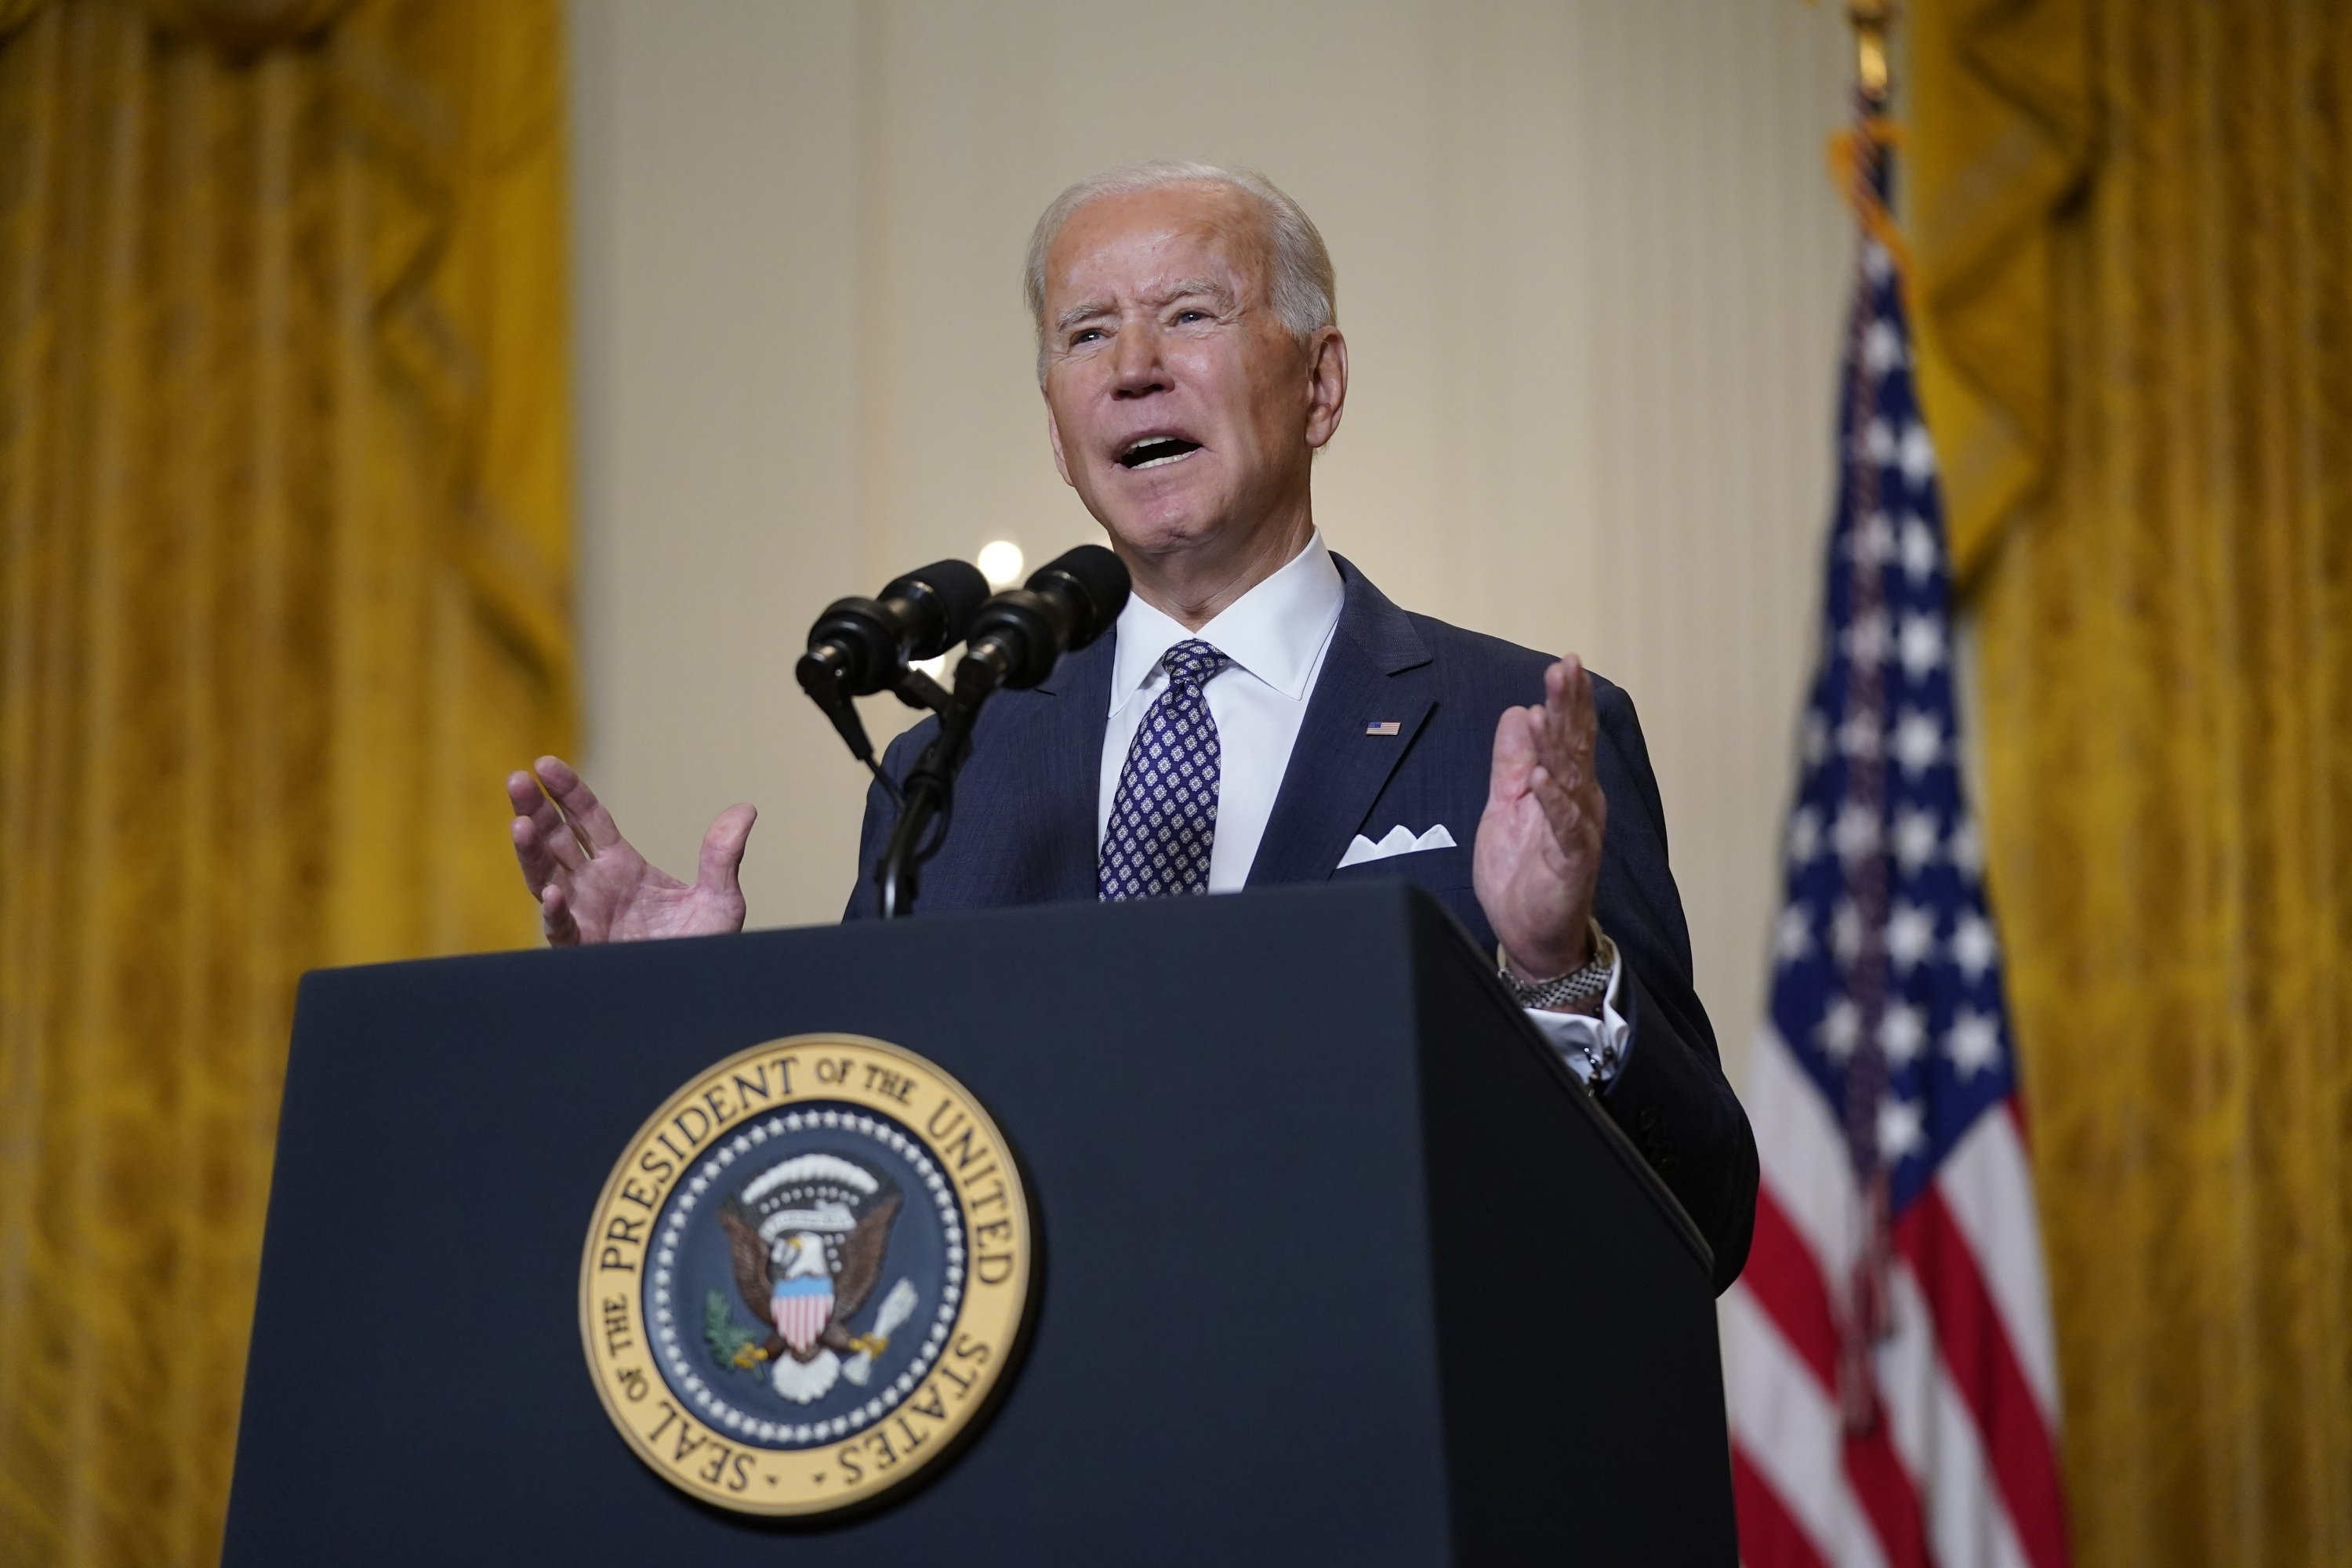 Biden declares 'America is back' in welcome words to allies – The Associated Press